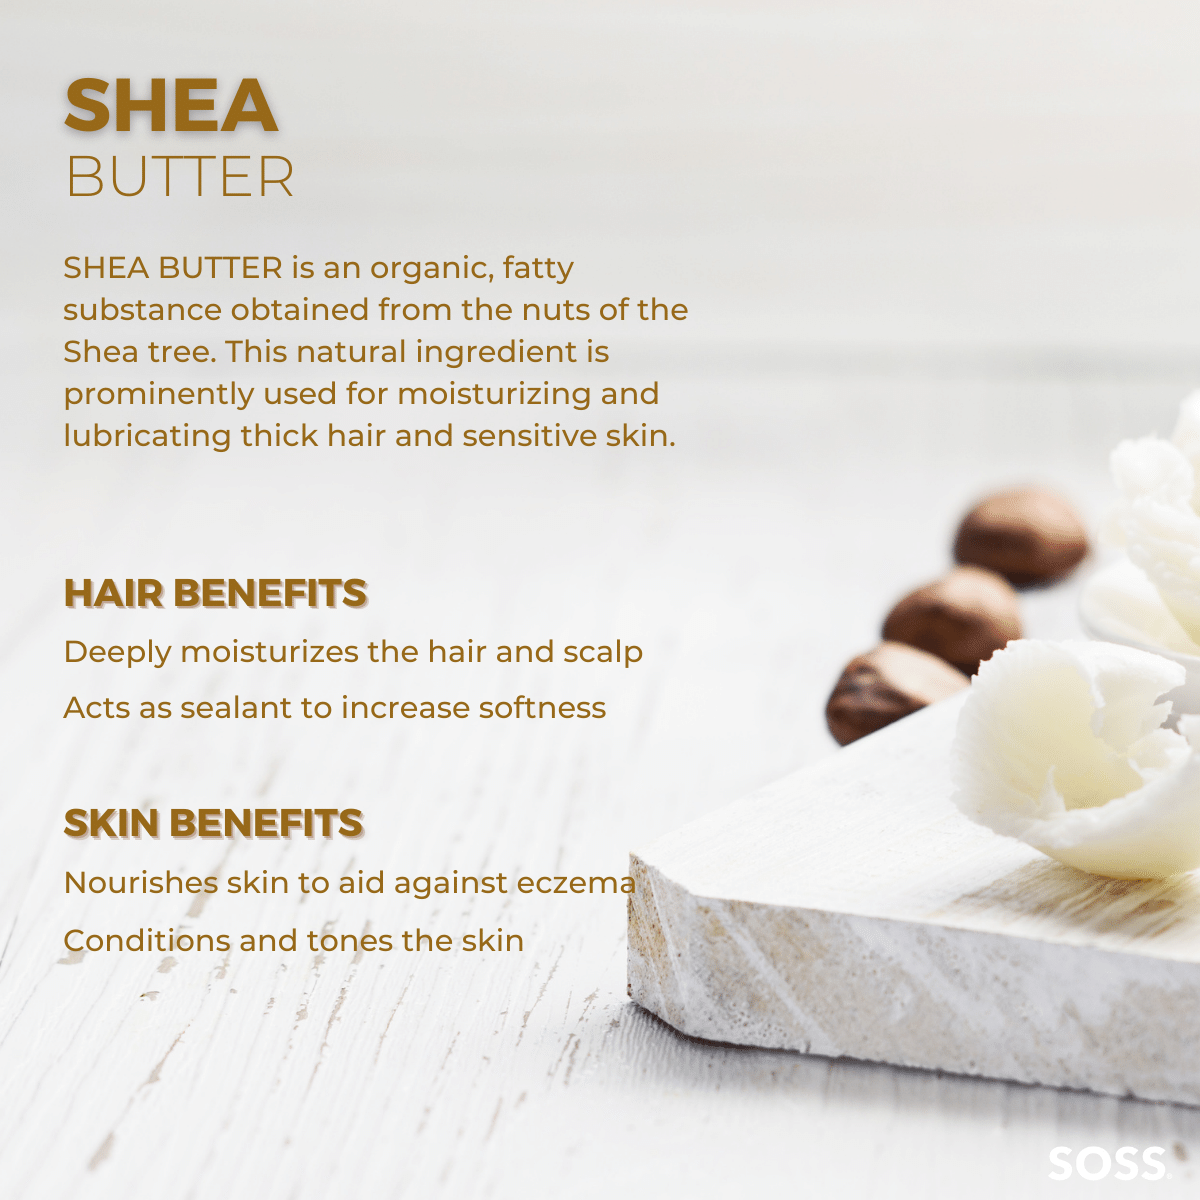 Shea Butter is a highly fatty substance used for added moisture to hair and skin.